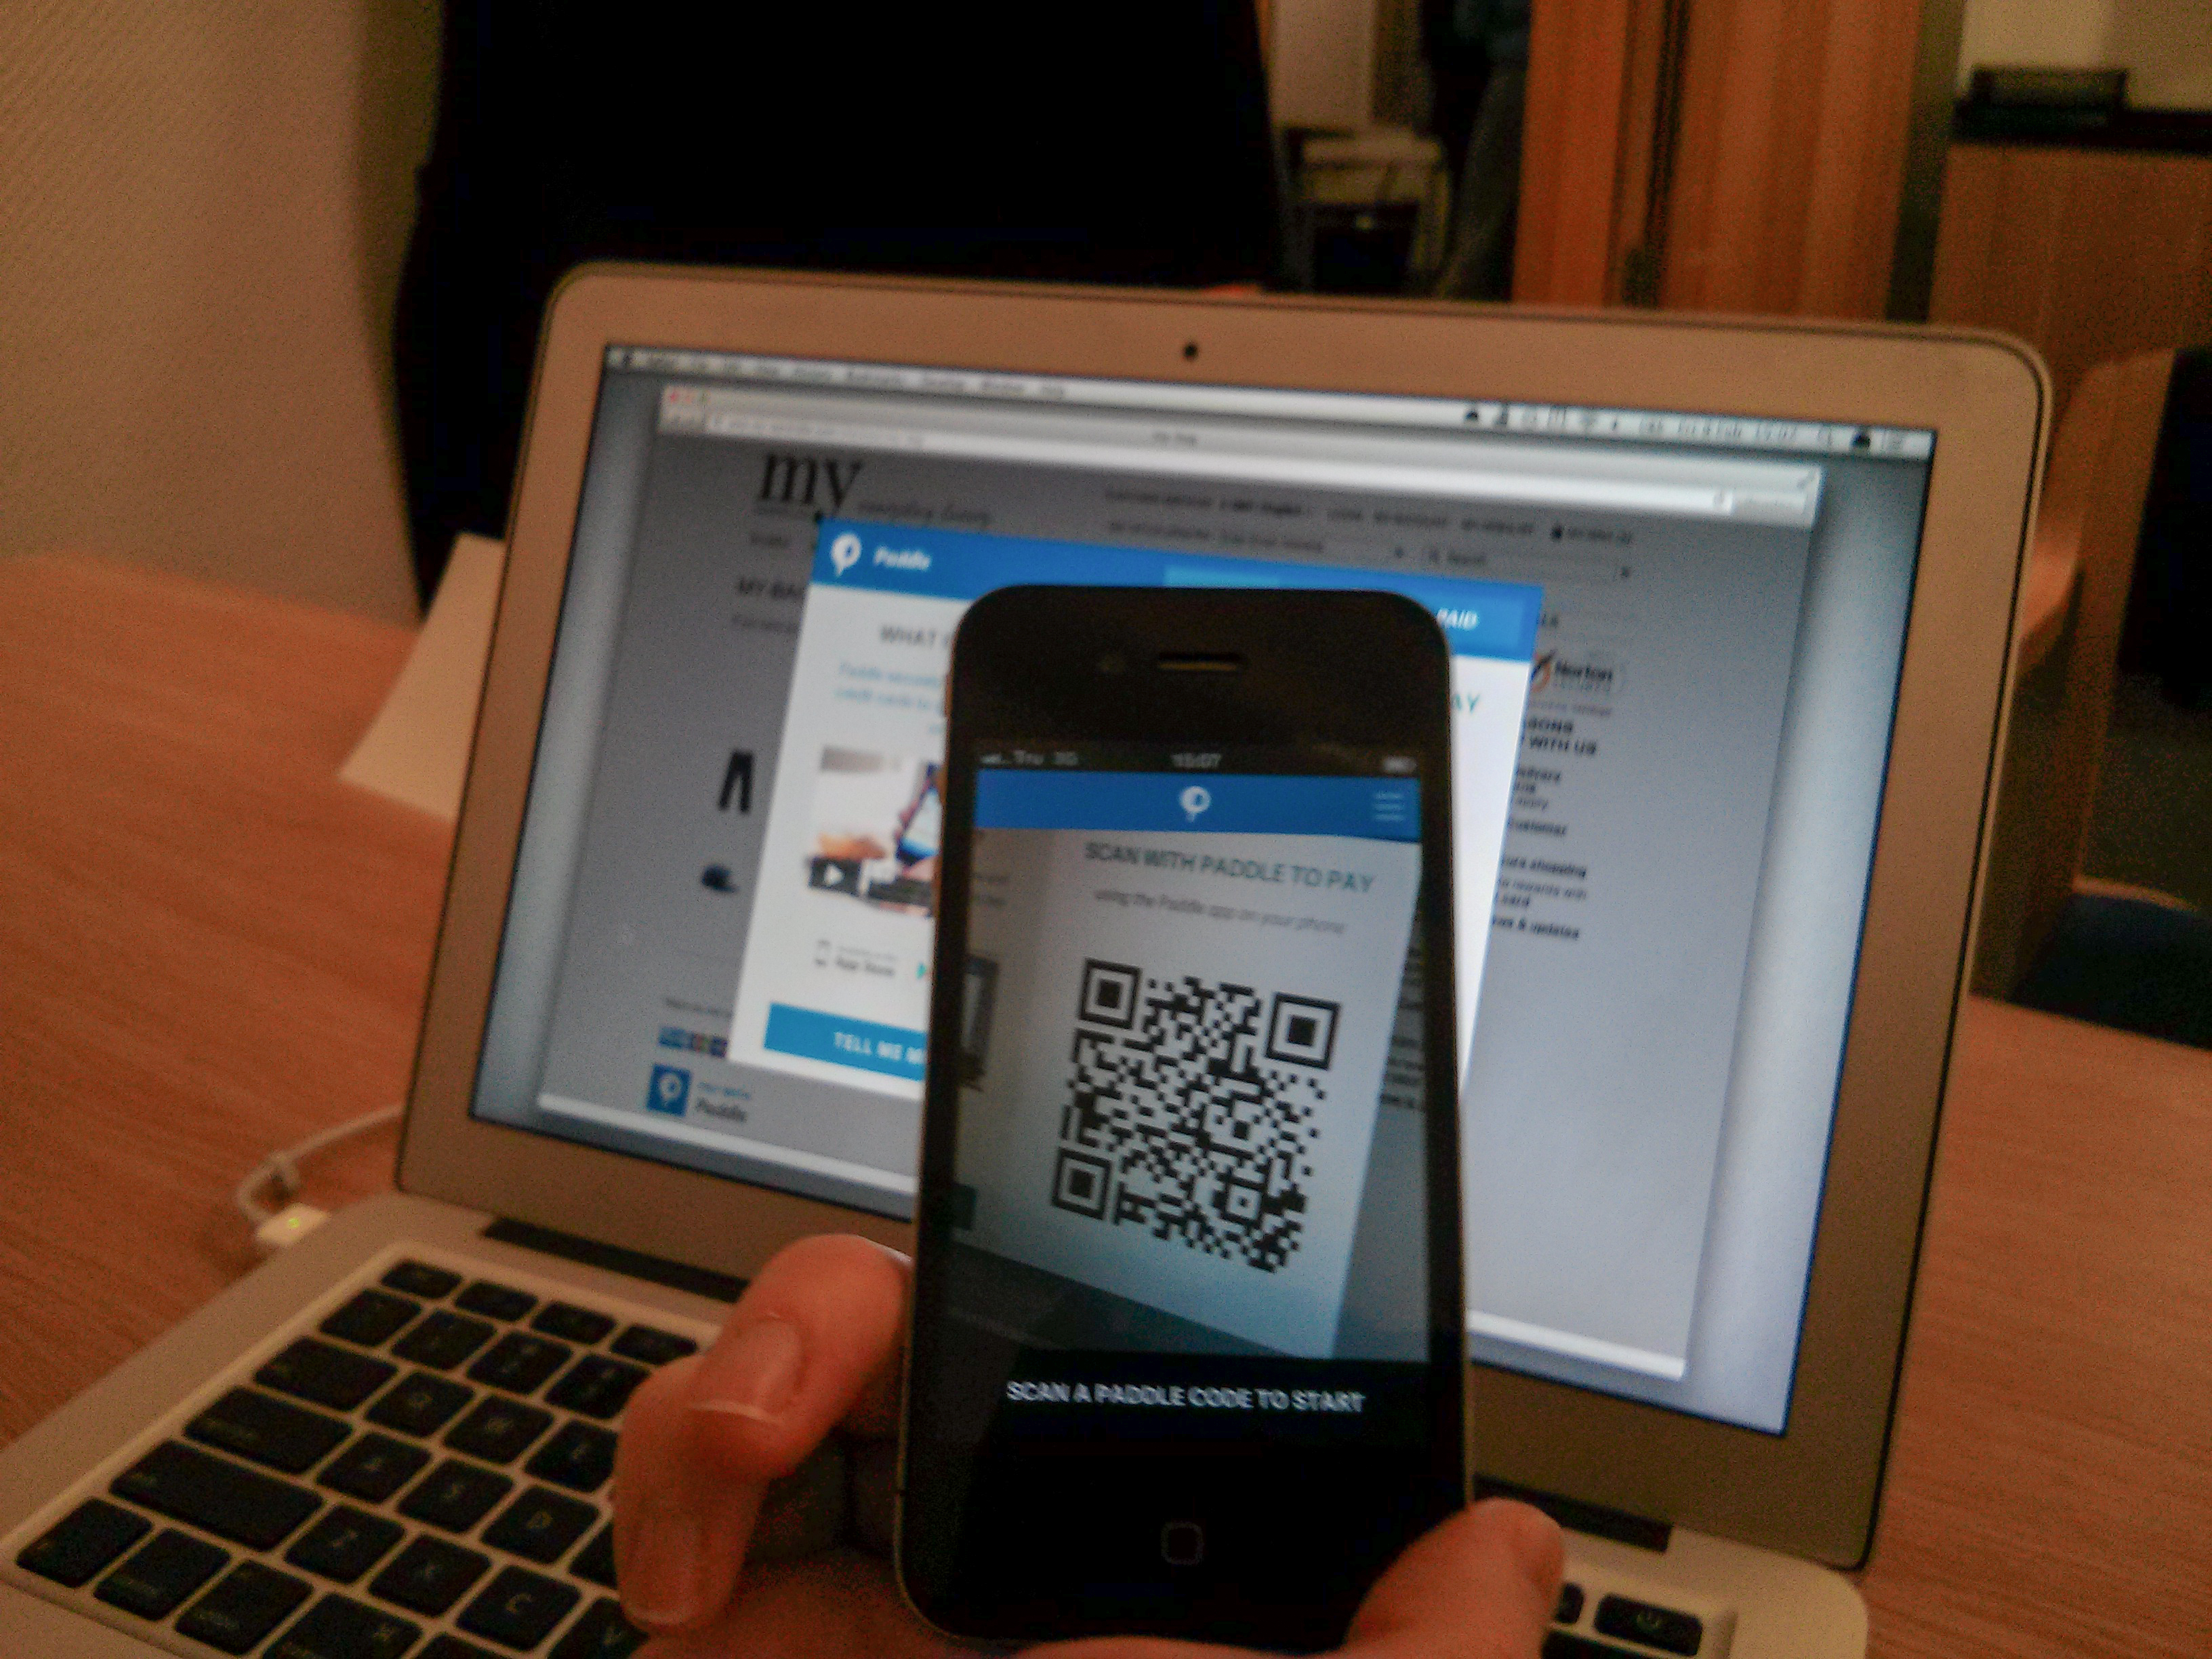 Pay online with quick code in mobile app